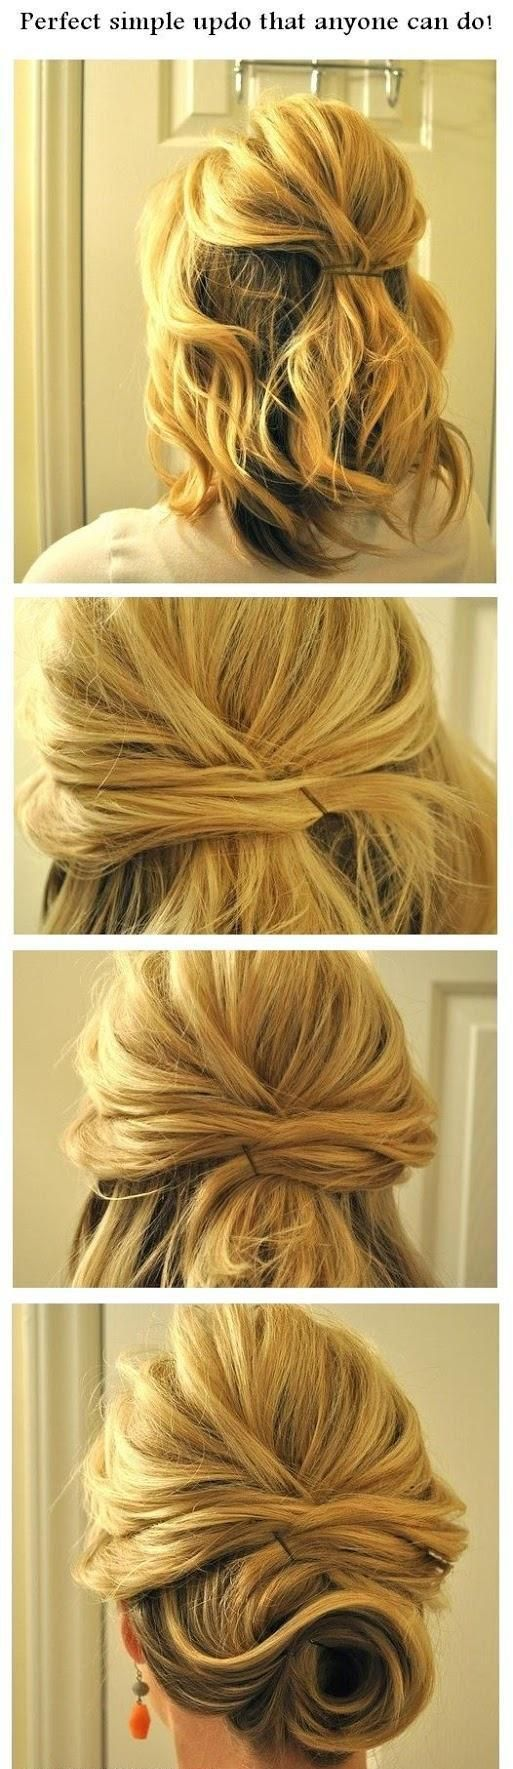 Perfect Messy Bun in 3 Easy Steps Perfect simple updo that anyone can do!   hairstyles tutorialPerfect simple updo that anyone can do!   hairstyles tutorial